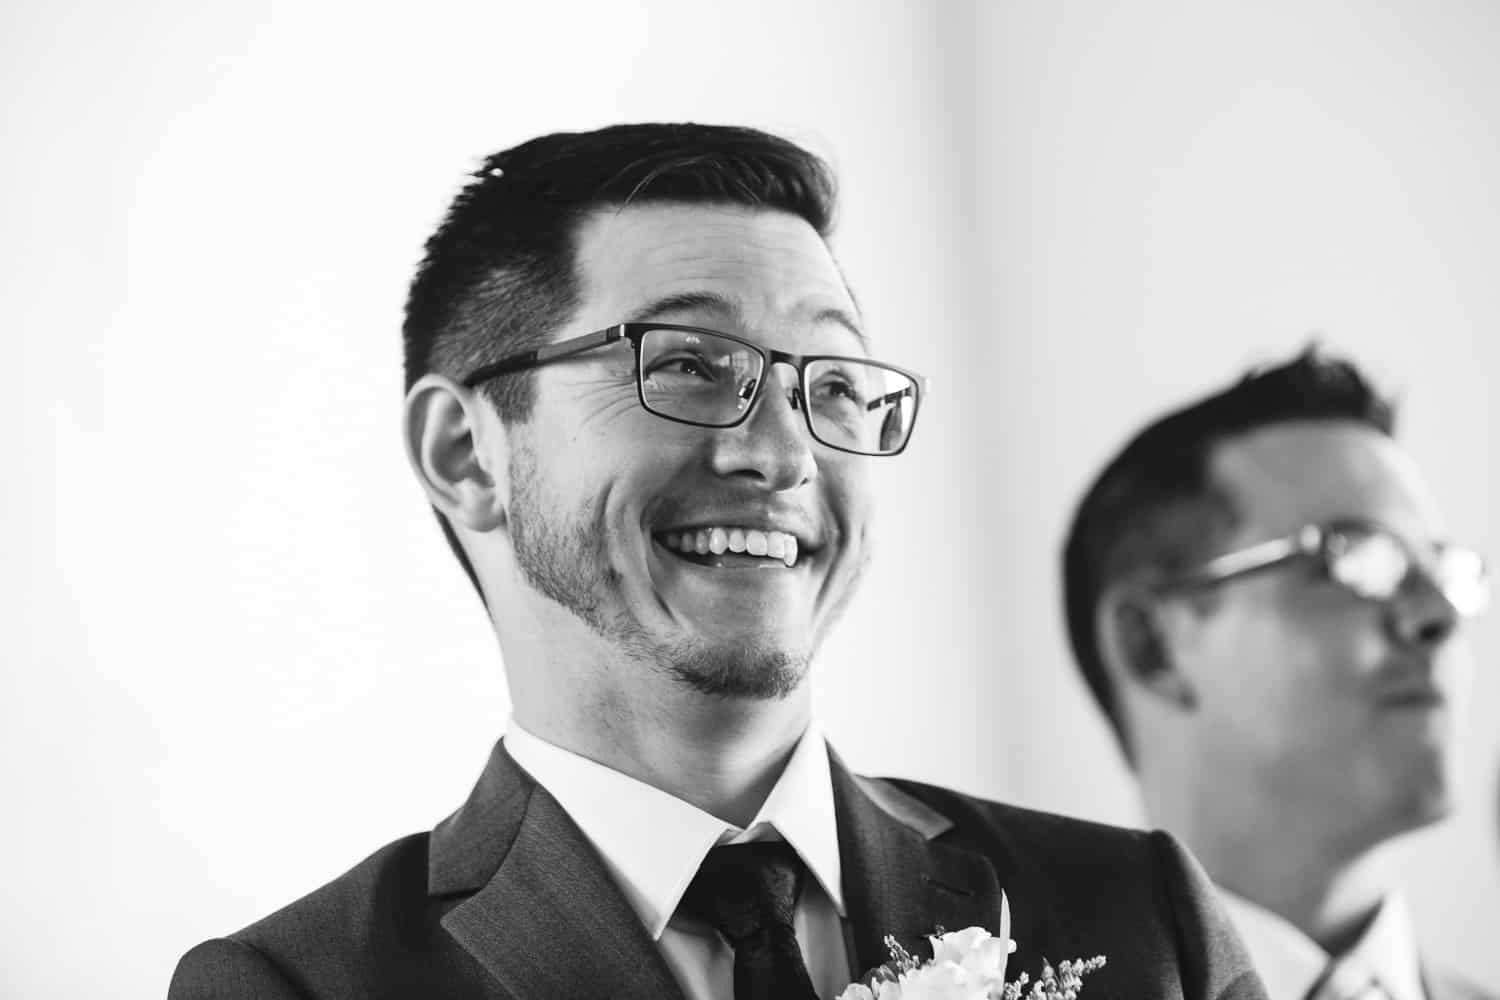 a groom grins ear to ear as his bride walks down the aisle.